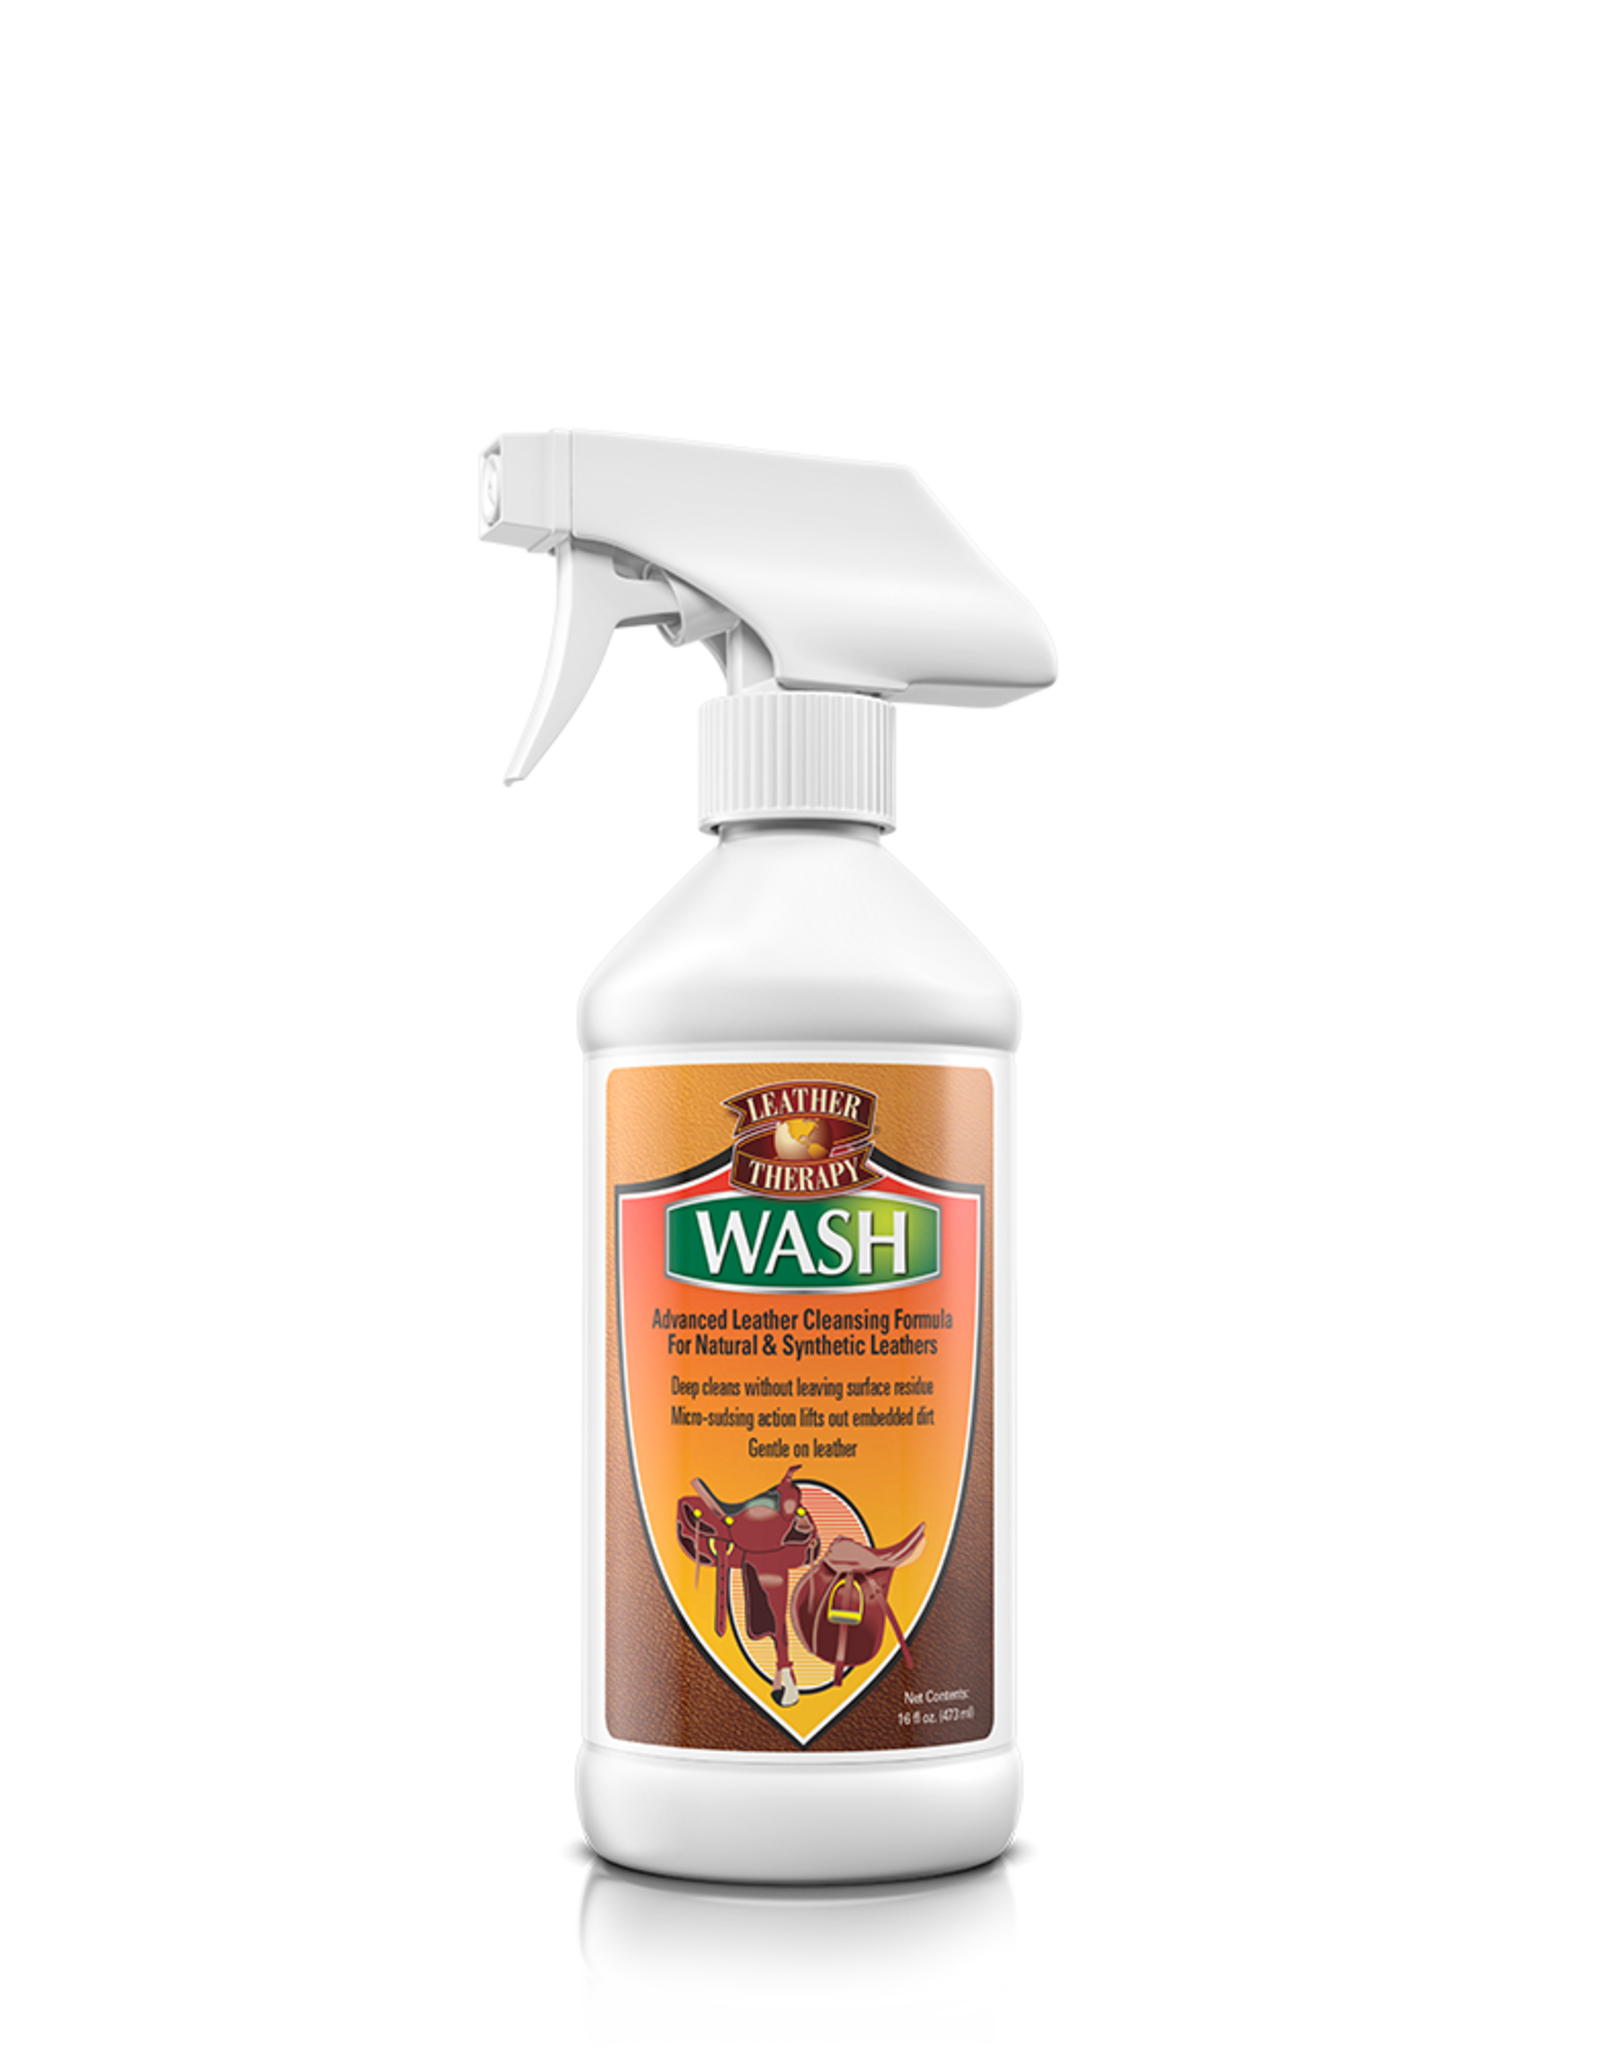 Leather Therapy Wash - 16oz